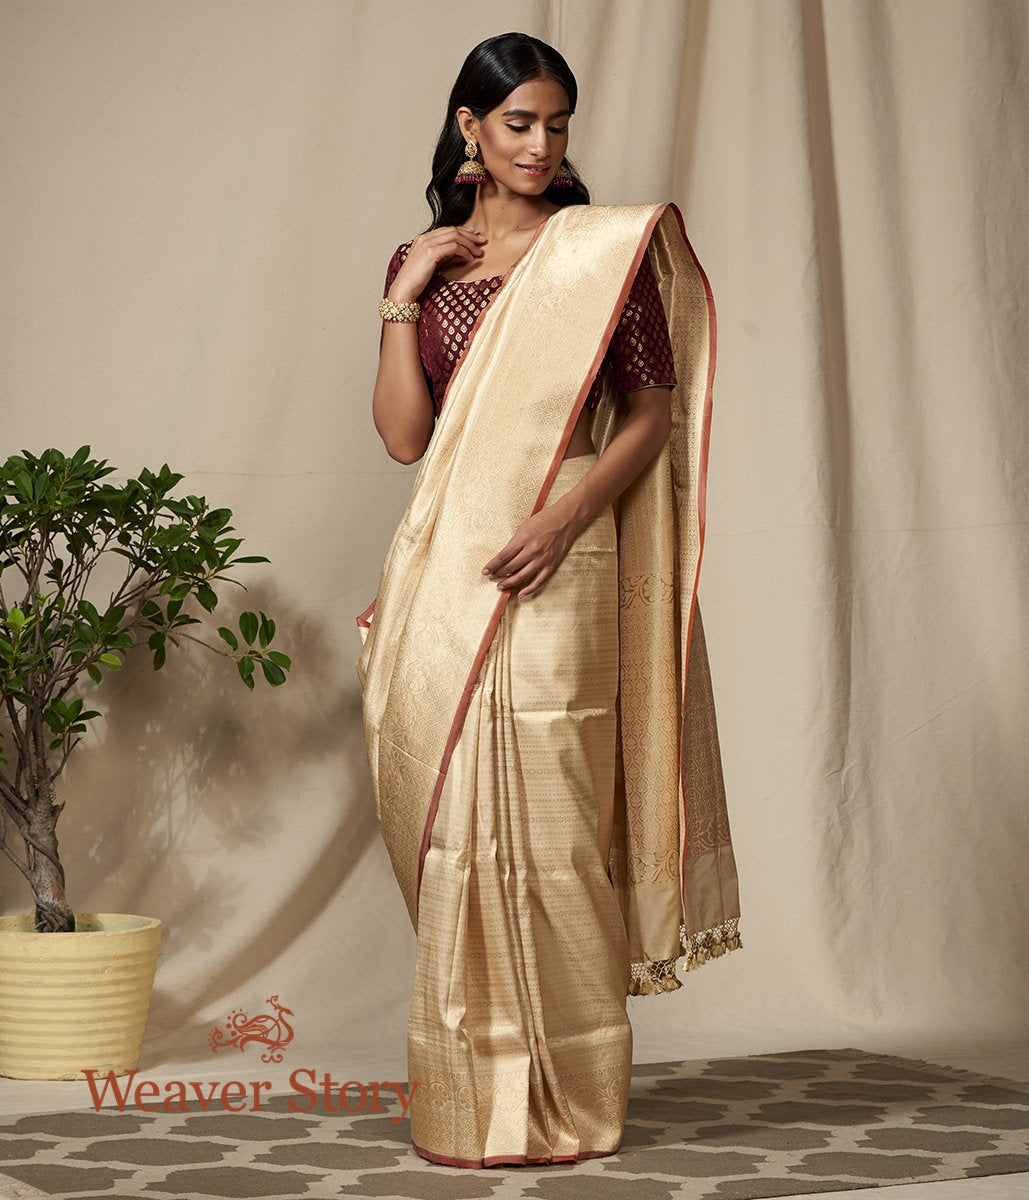 Handwoven Cream and Gold Banarasi Kimkhab Saree